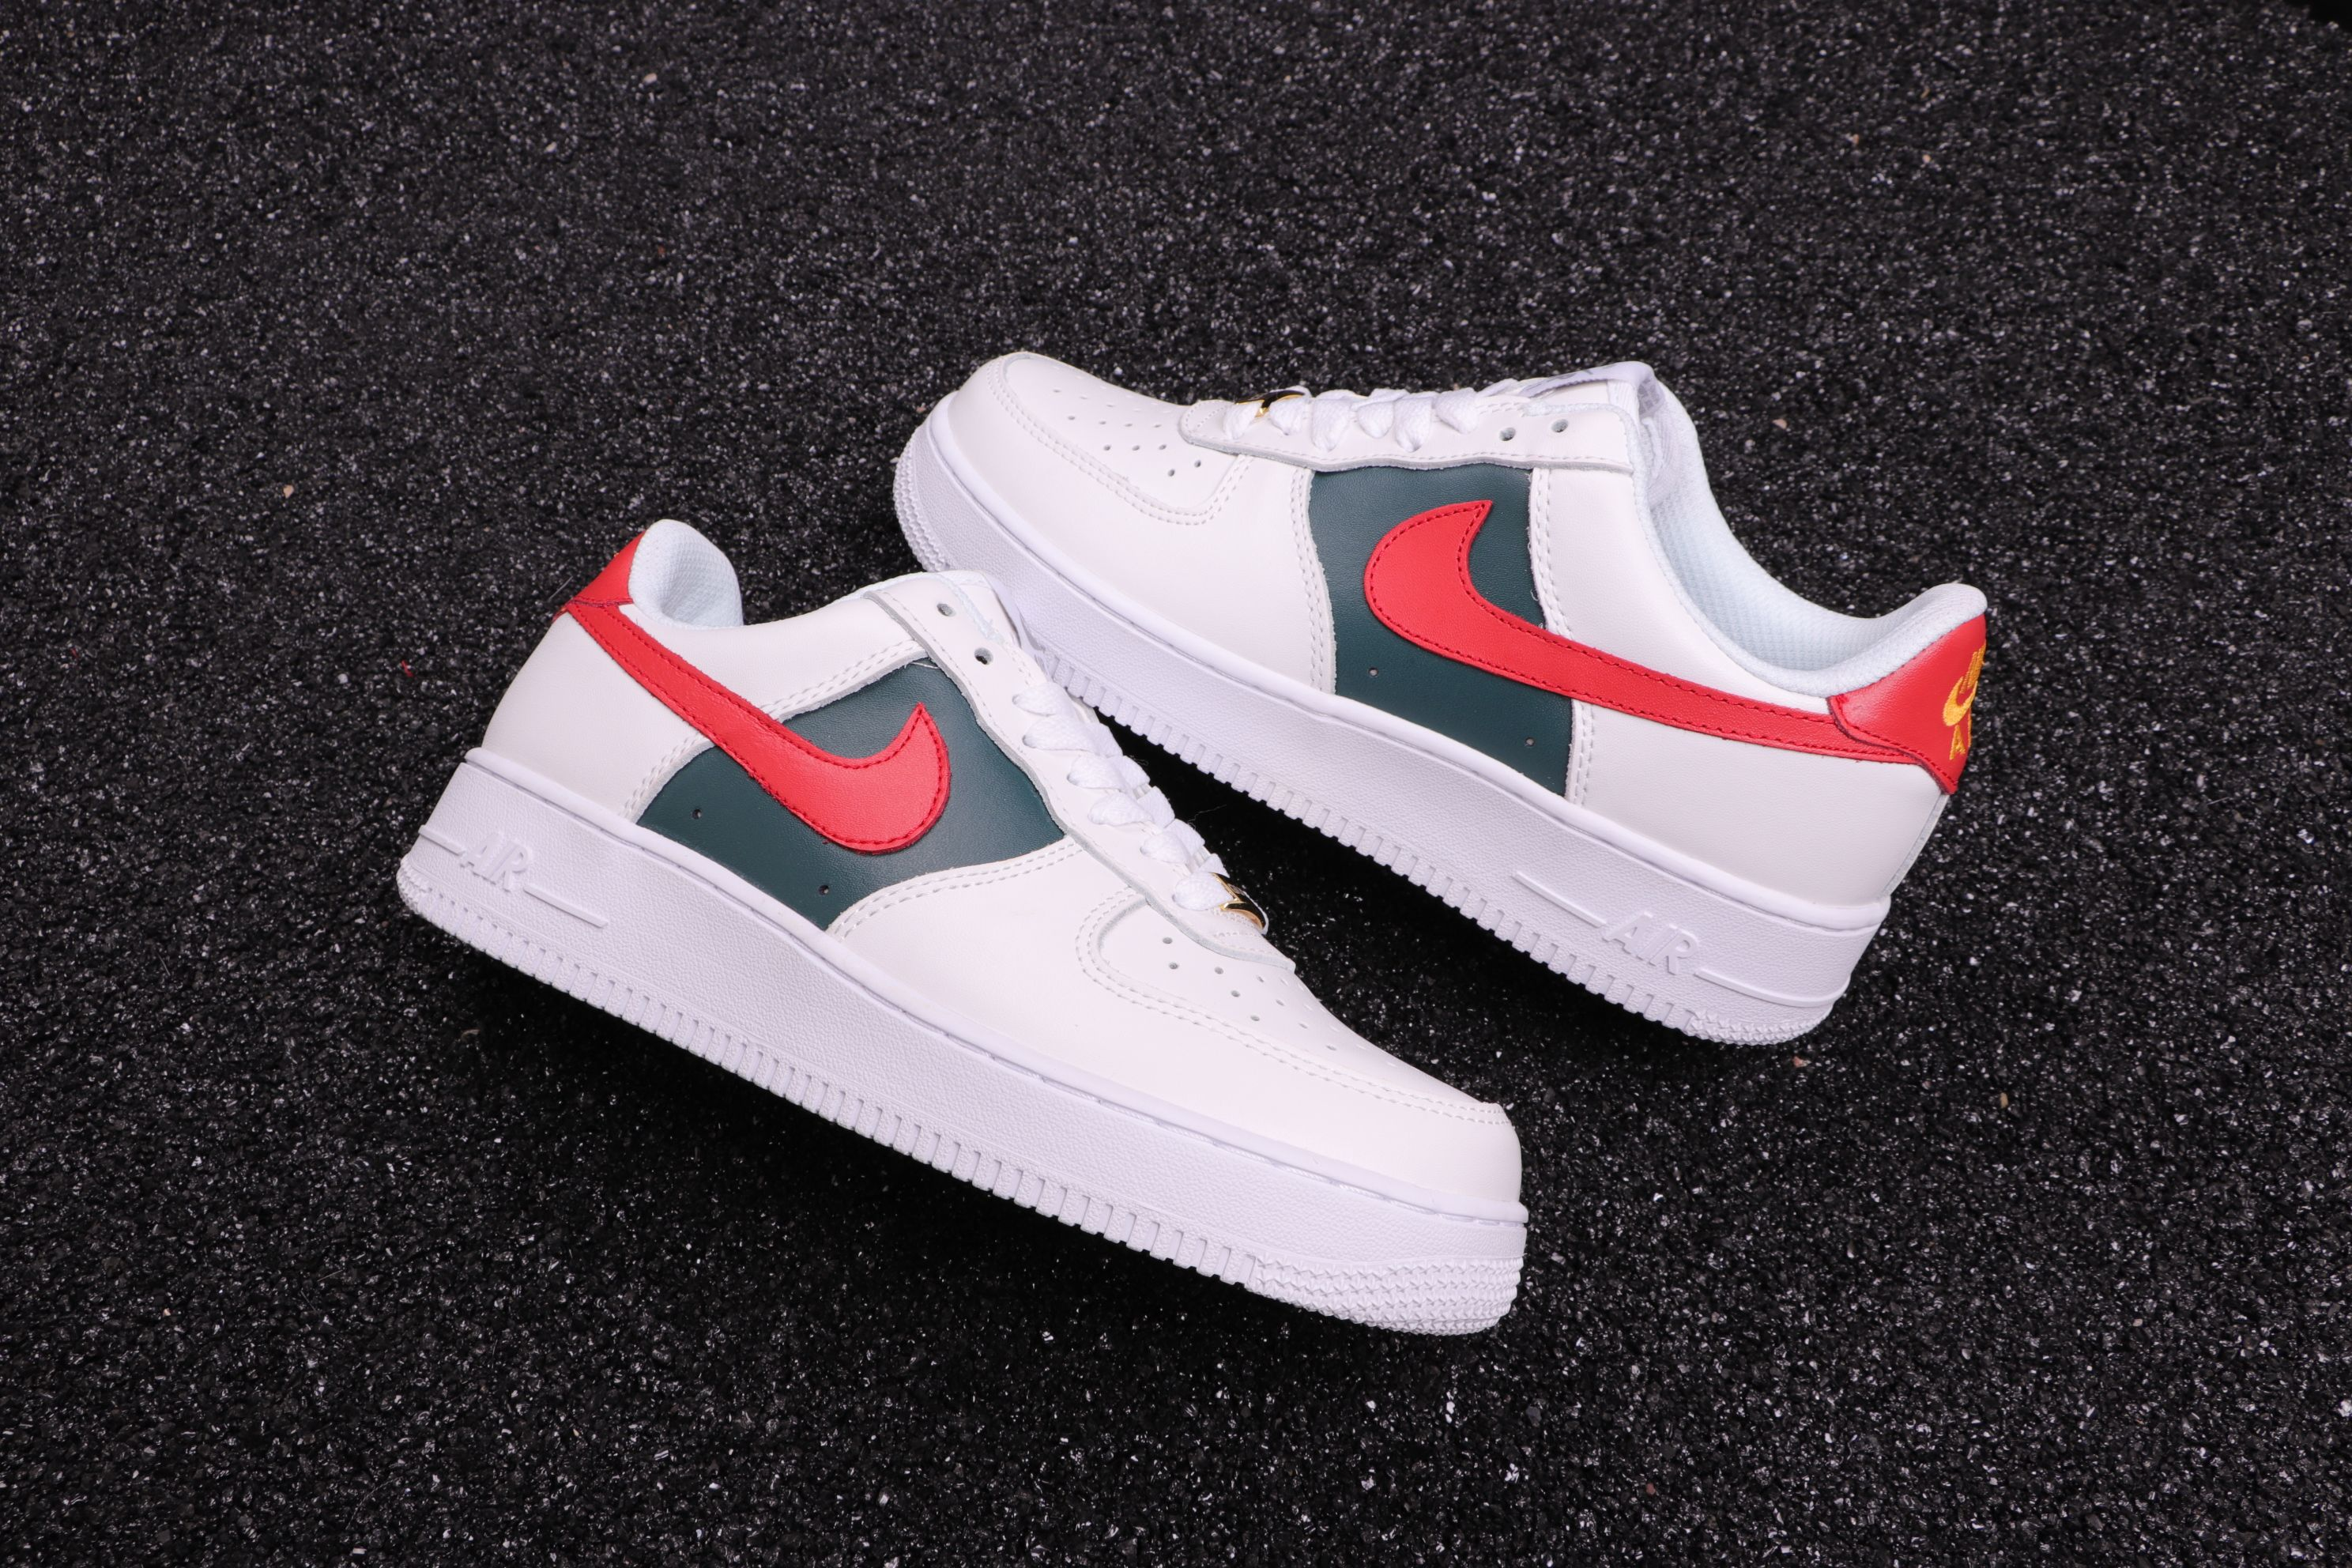 meet c3960 1f7a5 Custom Gucci x Nike Air Force 1 Low Red and Green Stripes